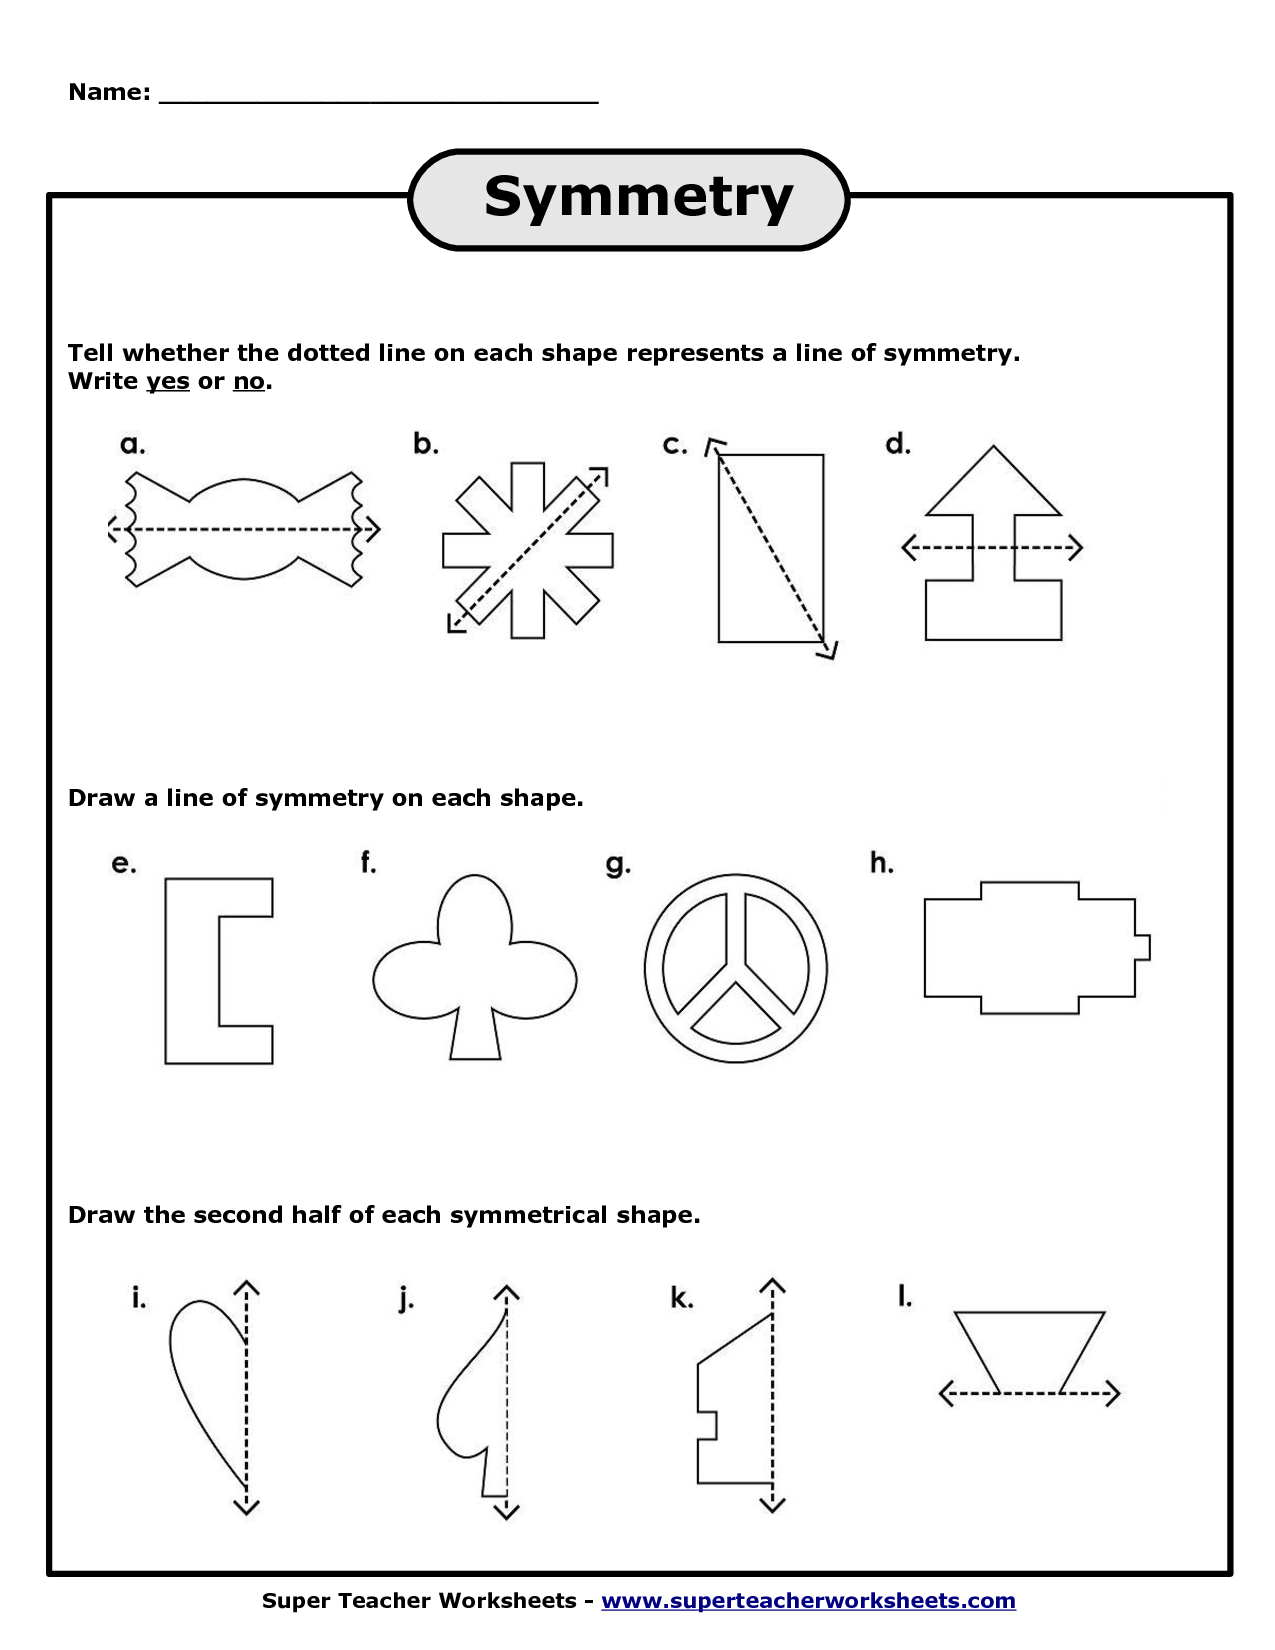 Worksheets Symmetry Worksheets symmetry worksheet teach me some art pinterest worksheet